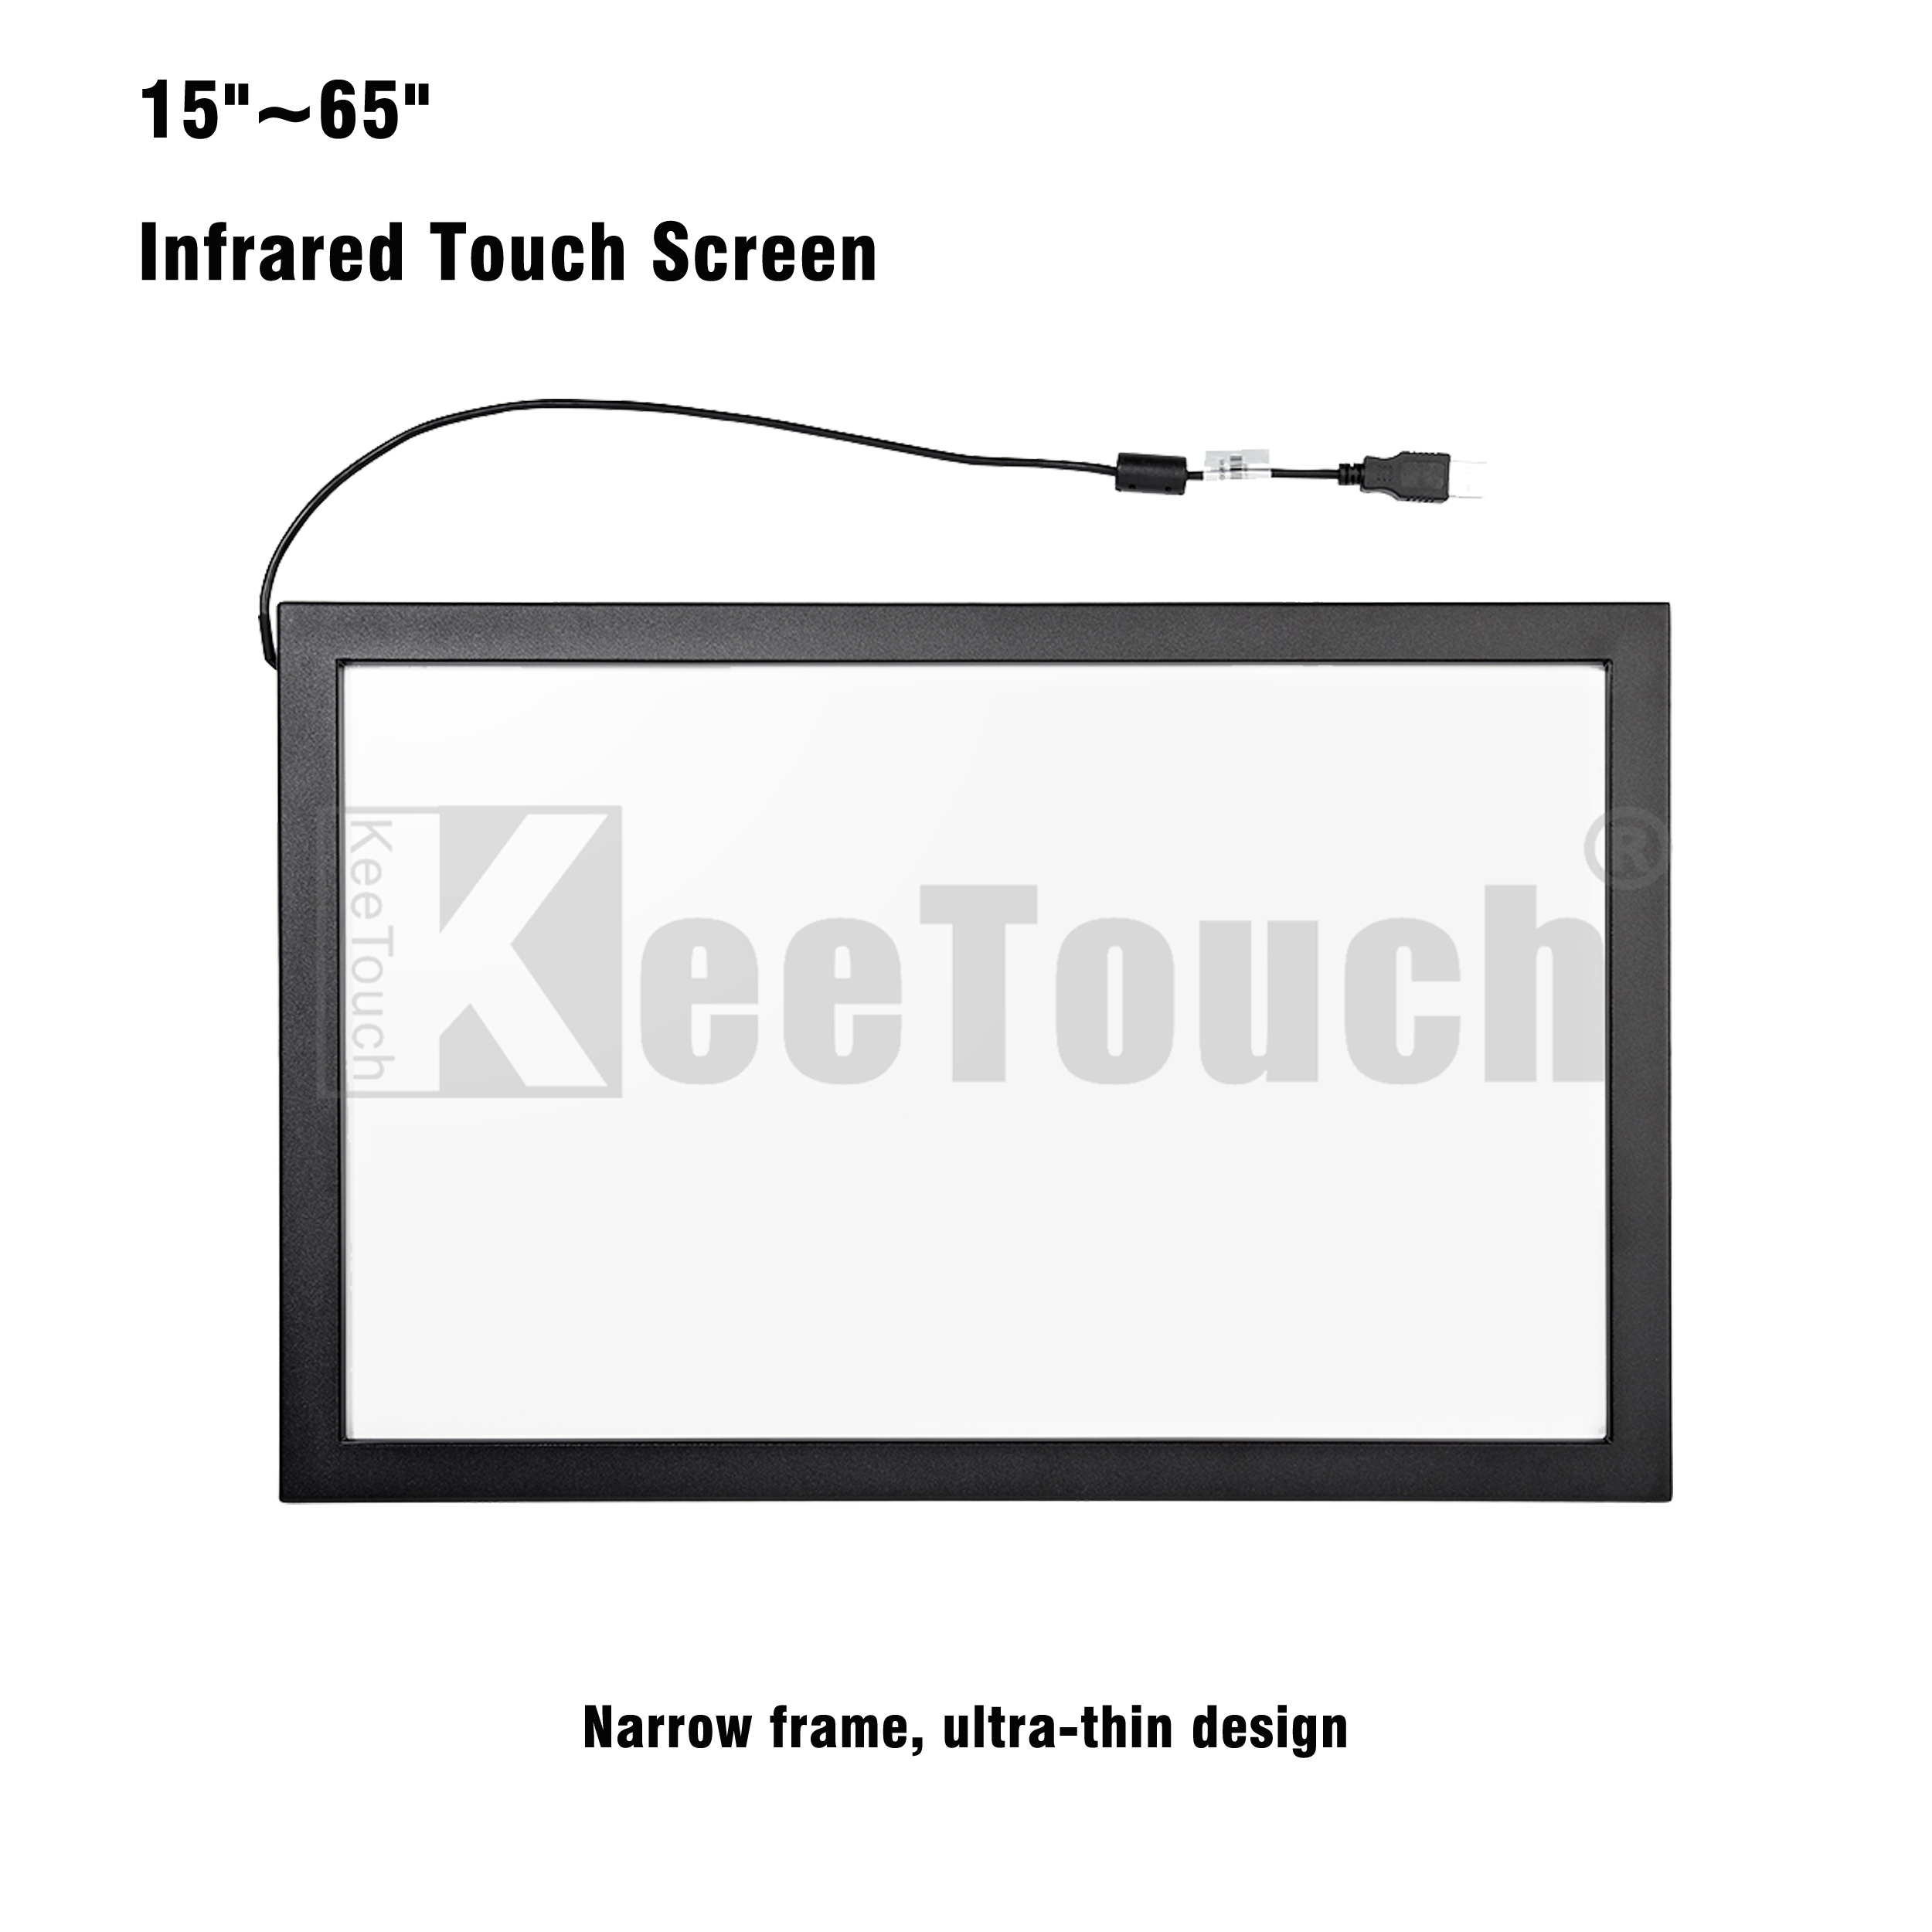 clipart royalty free Shenzhen KeeTouch Technology Co